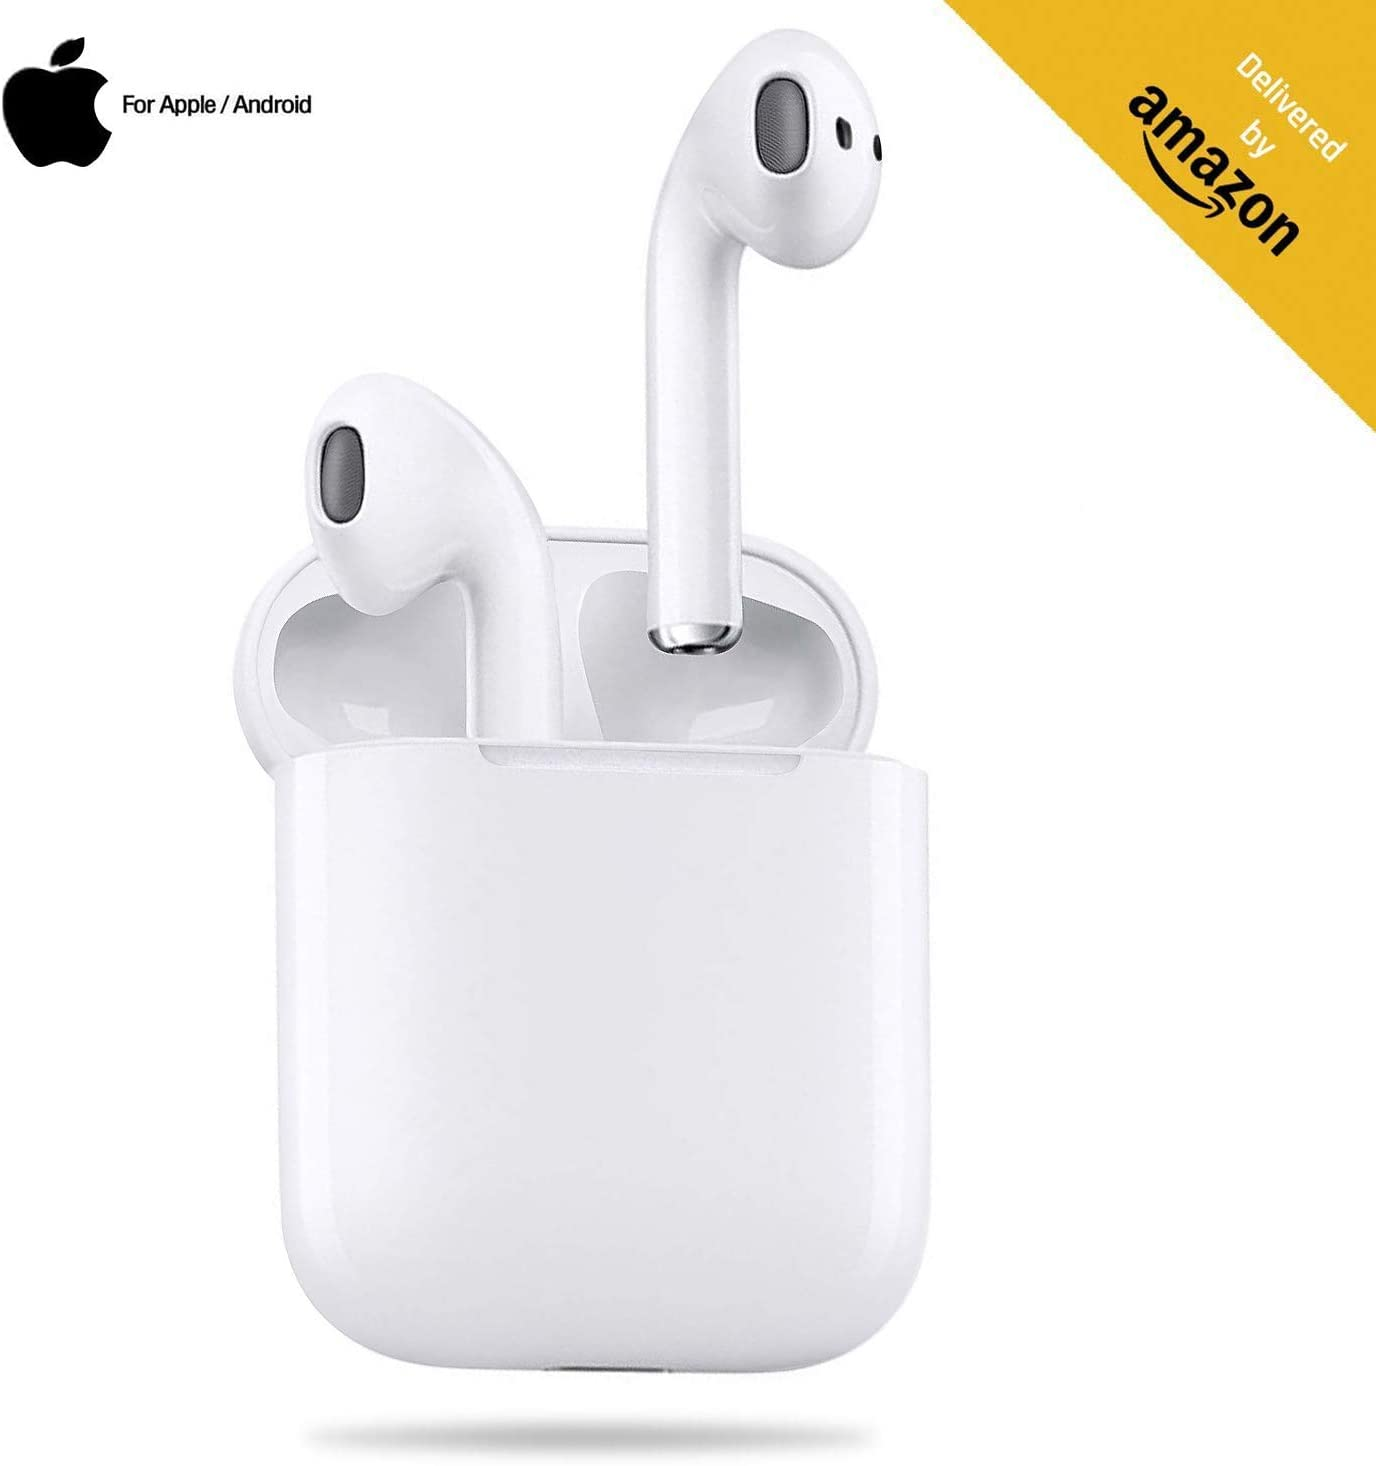 Bluetooth Headphones Bluetooth 5.0 Wireless Earbuds 3D Stereo Touch-Control Headsets Pop-ups Pairing 24H Playtime Fast Charging Case IPX5 Waterproof Earphones for iPhone Apple Airpods Android